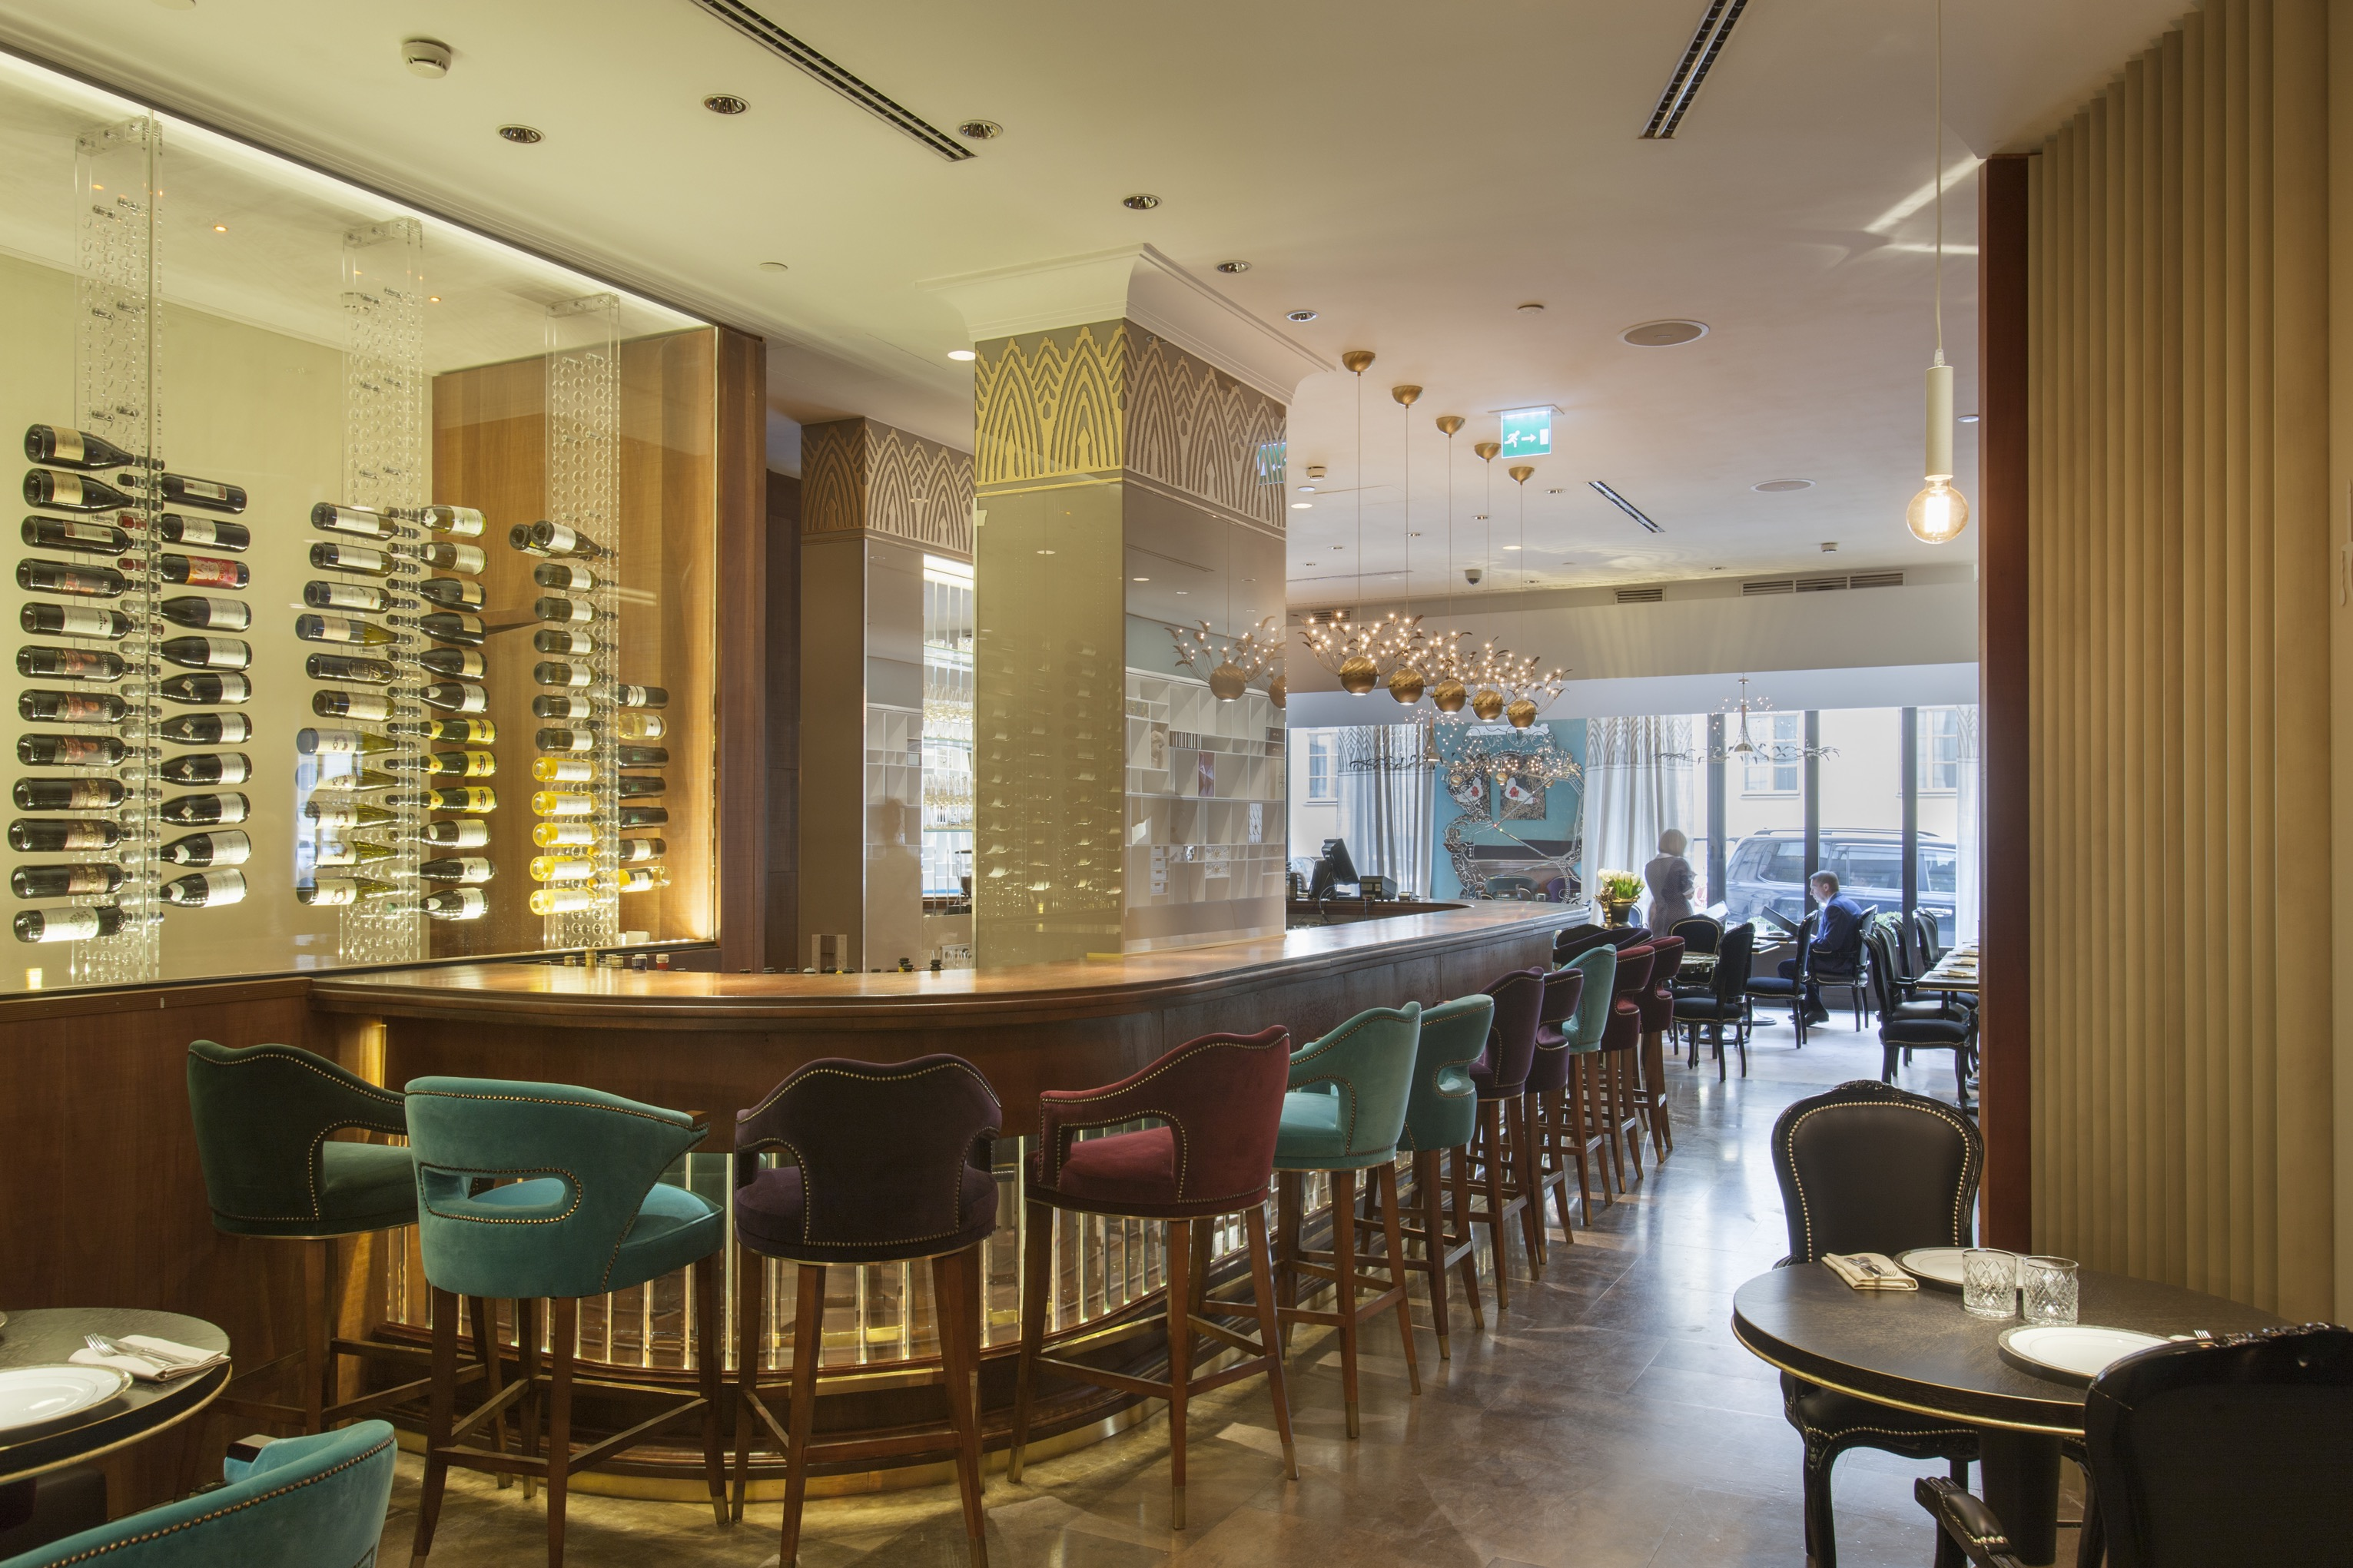 Discover The Best Hospitality Design Projects From Brabbu Contract  brabbu contract Discover The Best Hospitality Design Projects From Brabbu Contract COCOCO Restaurant St